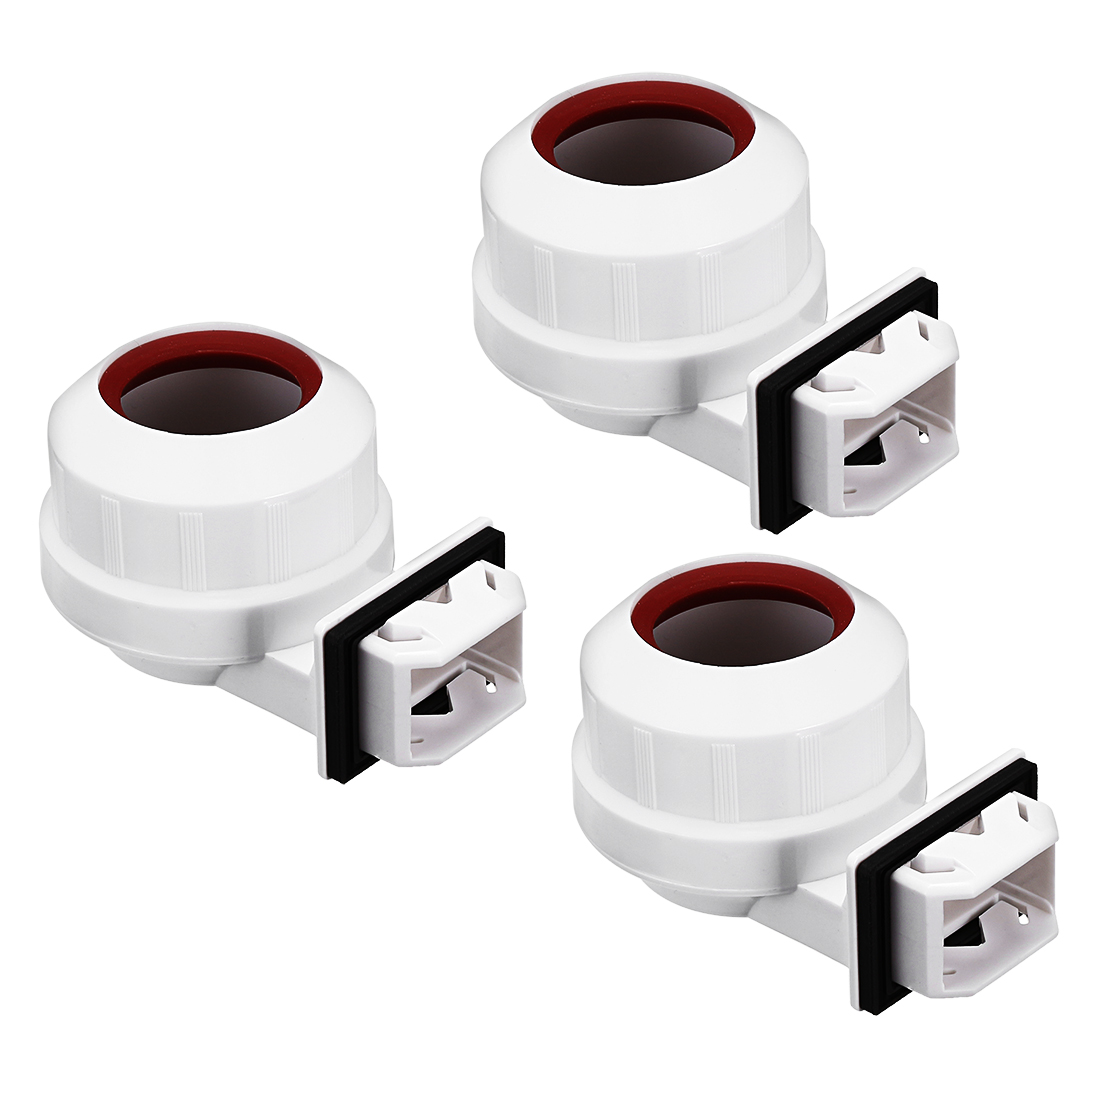 3pcs 2A G13-F41G T8 Light Socket G13 Base Fluorescent Lamp Holder w Cover